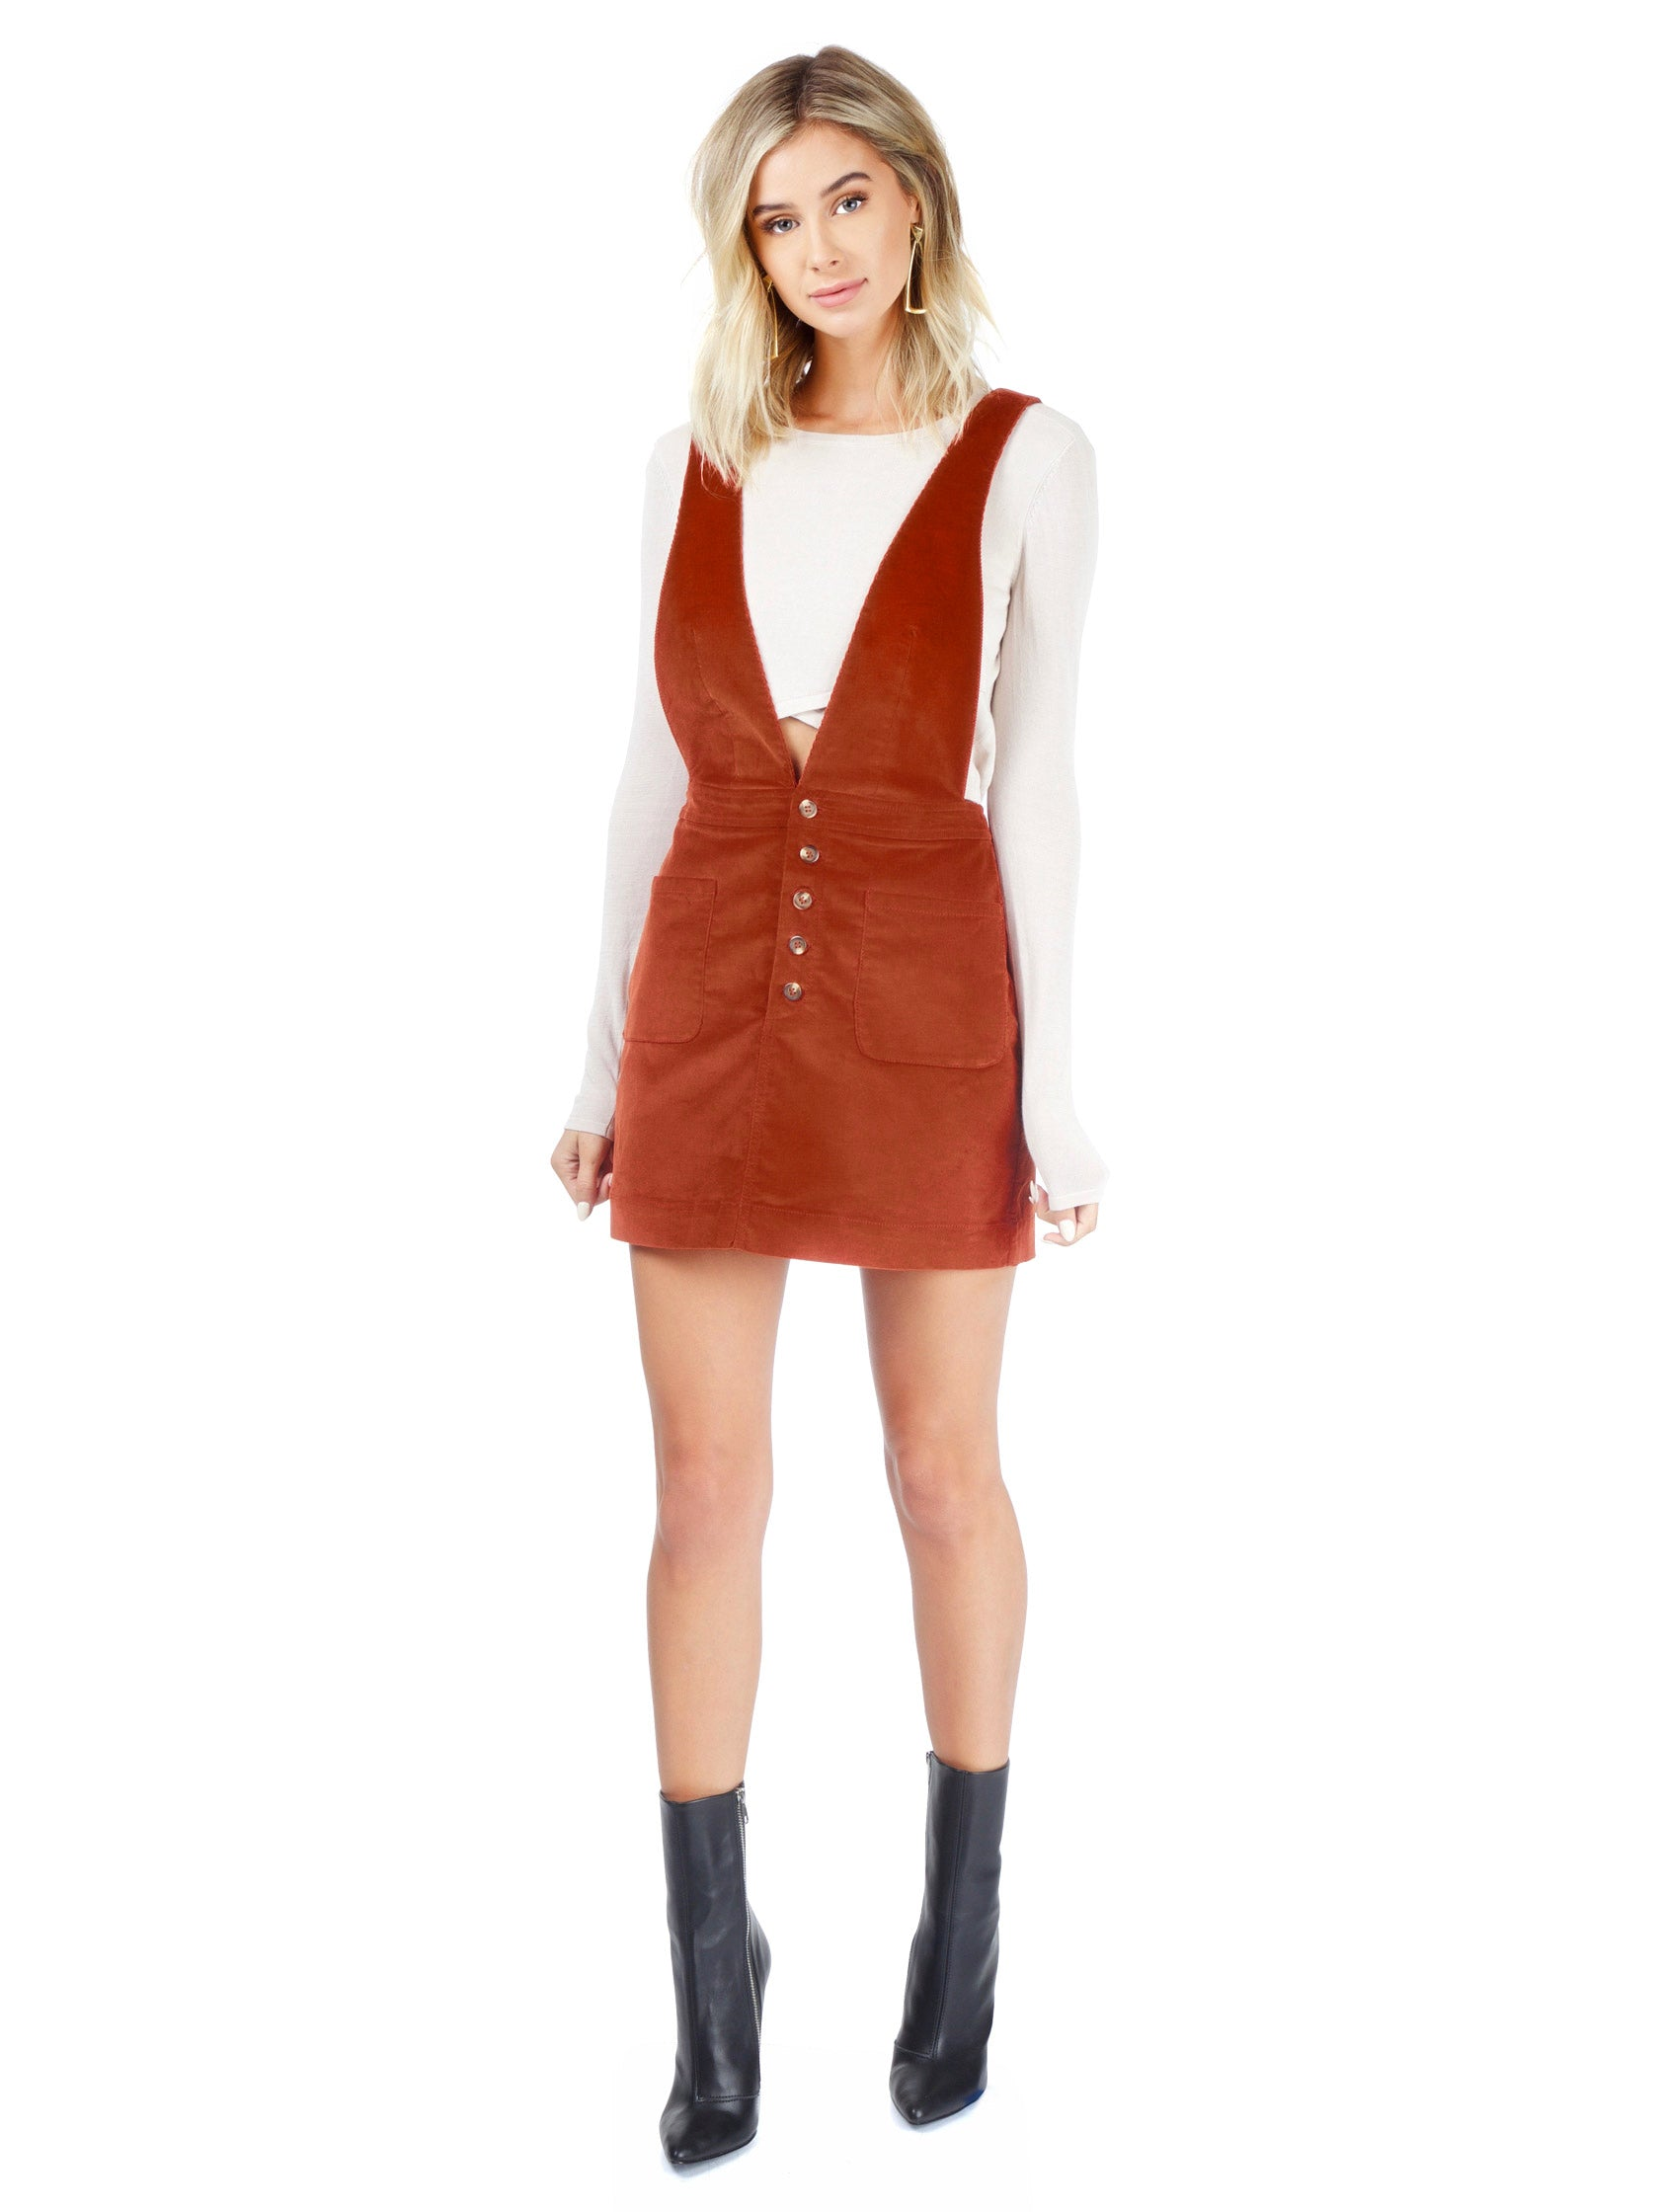 d506f8690b8ef Girl outfit in a dress rental from Free People called Old School Love Jumper